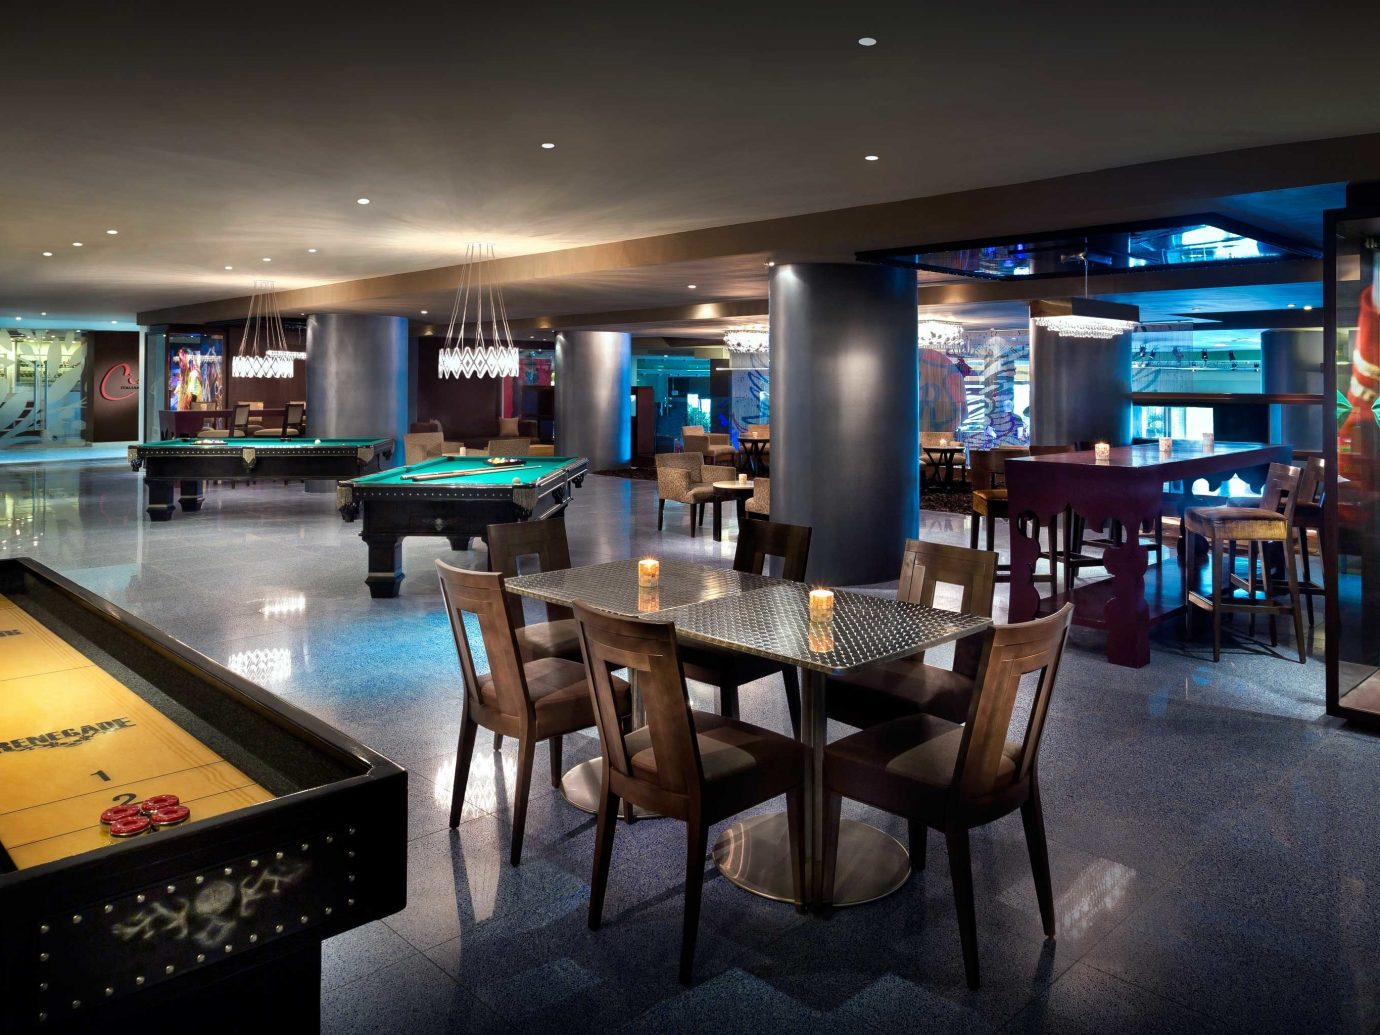 All-Inclusive Resorts Entertainment Family Travel Hotels Modern Party Resort indoor ceiling floor table room chair recreation room Bar Dining interior design nightclub estate restaurant area furniture